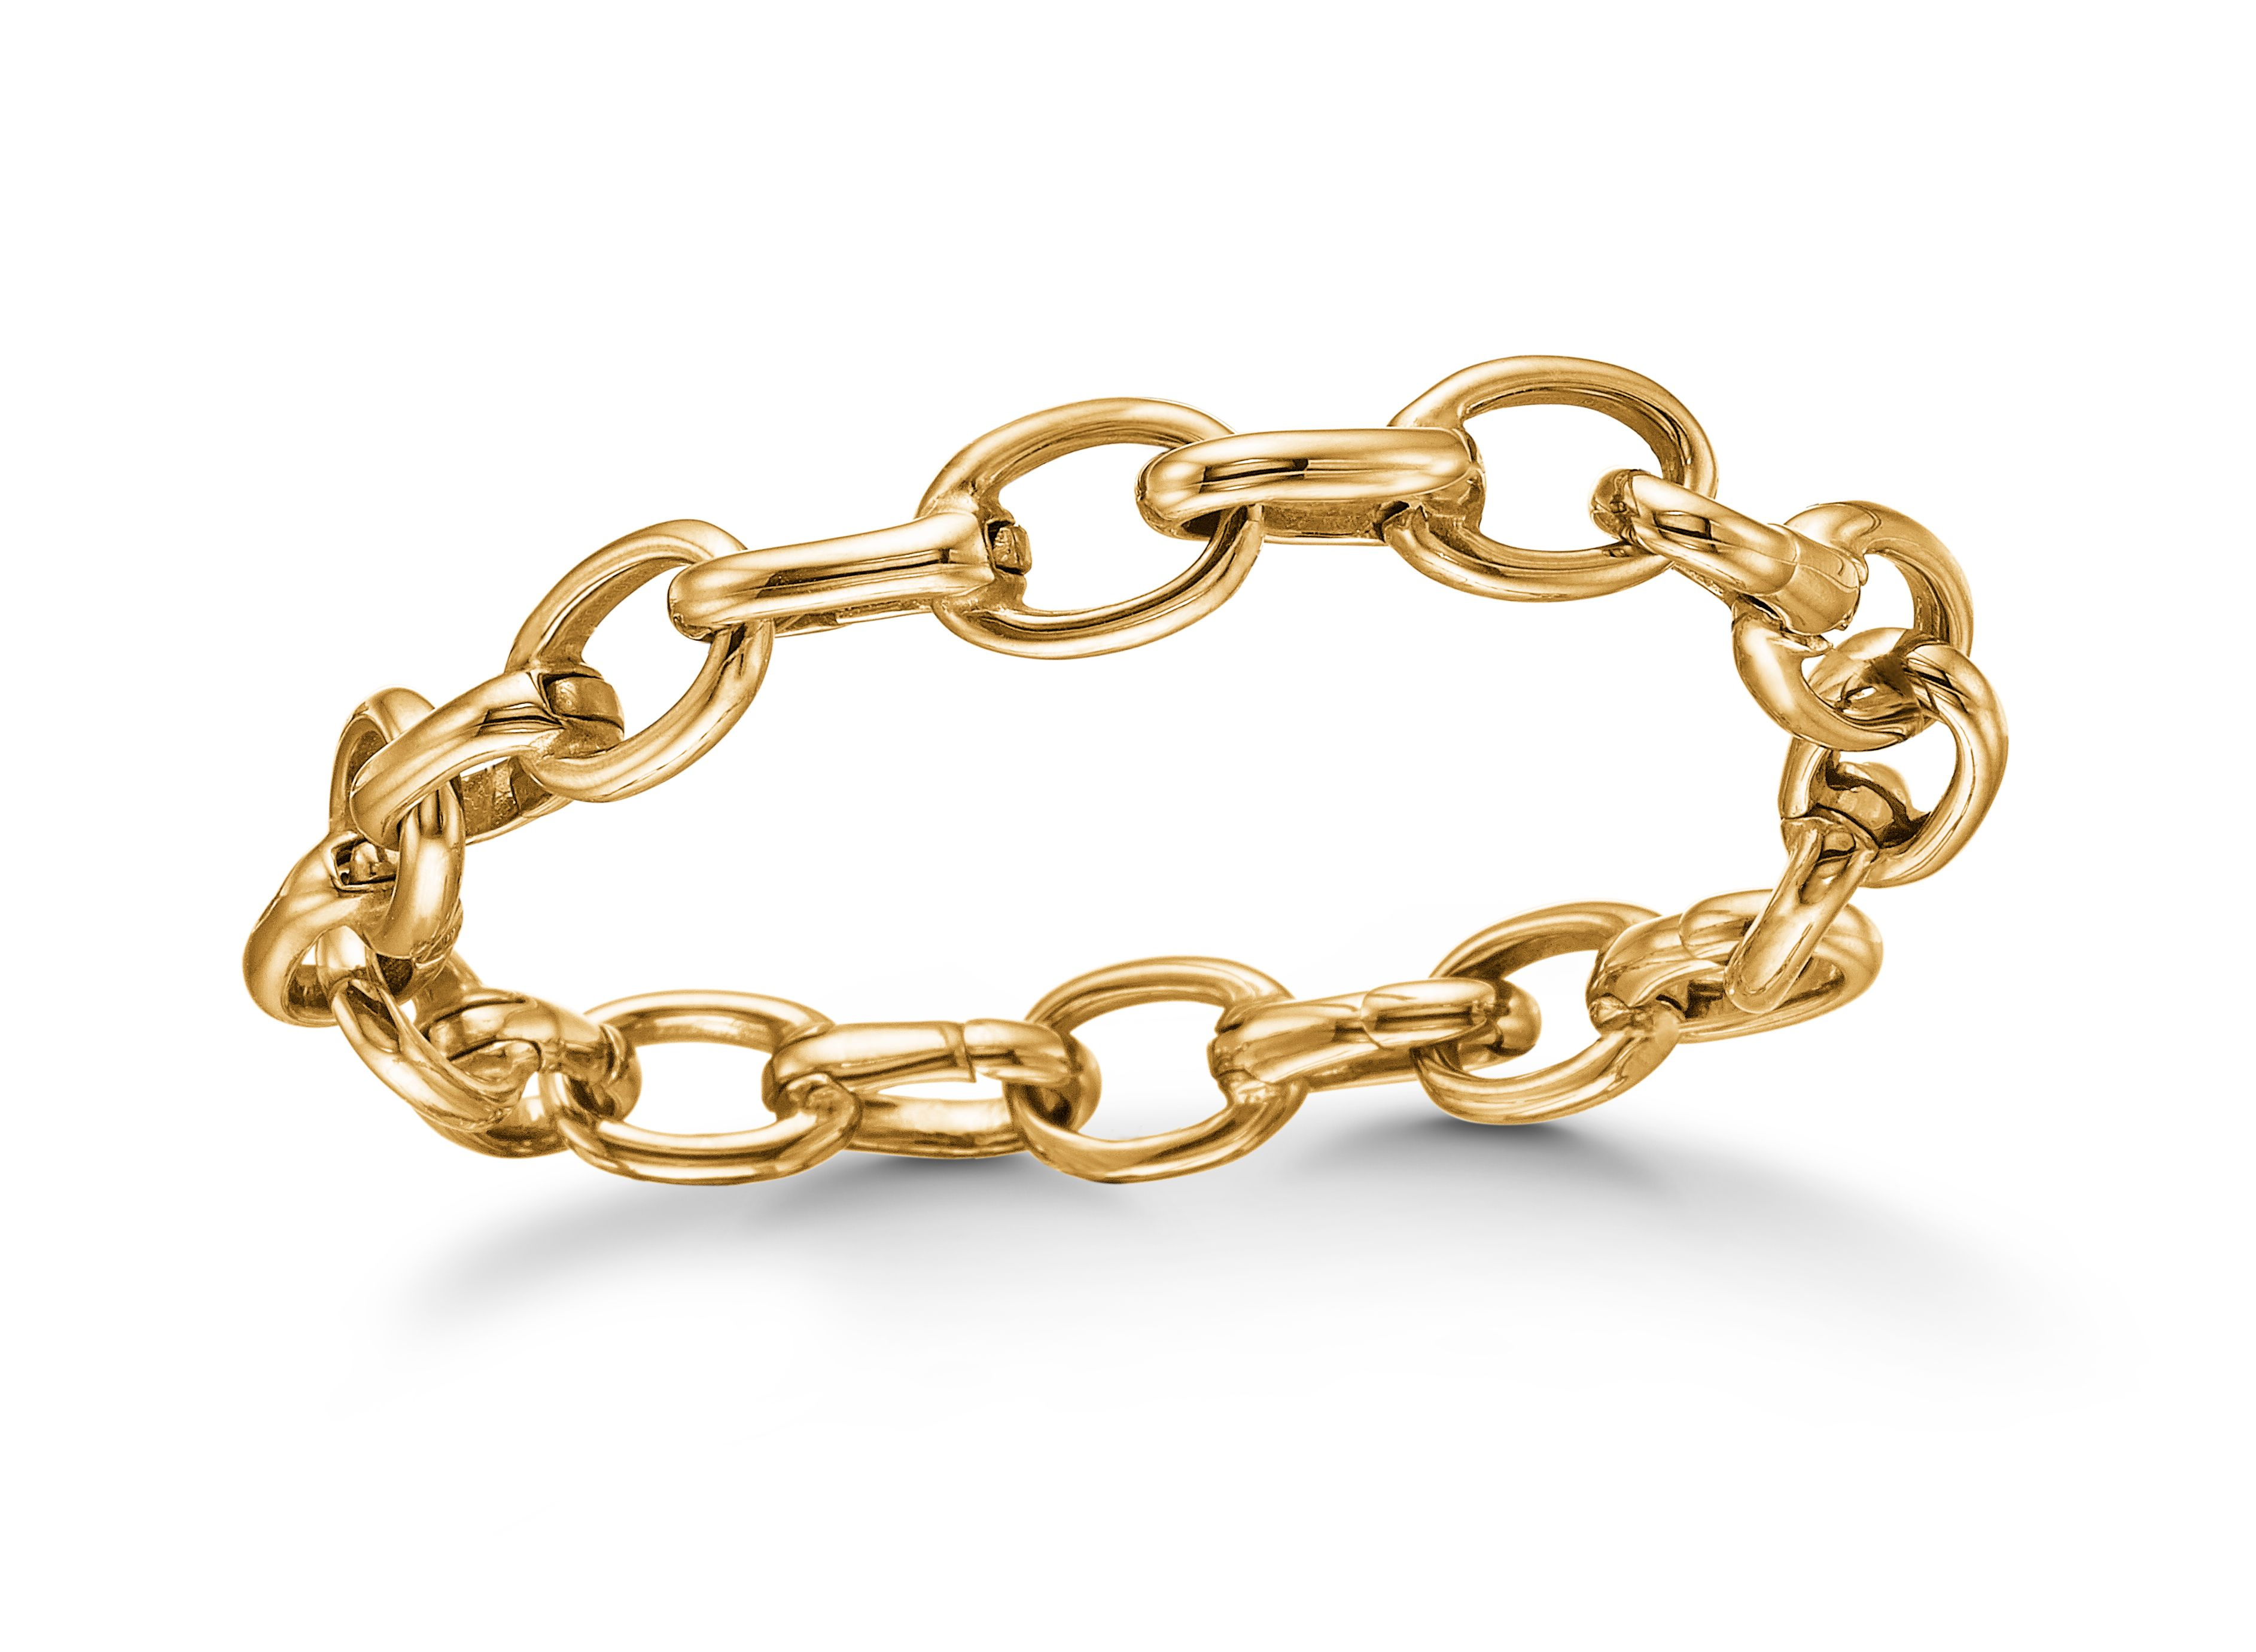 Gold plated steel link bracelet